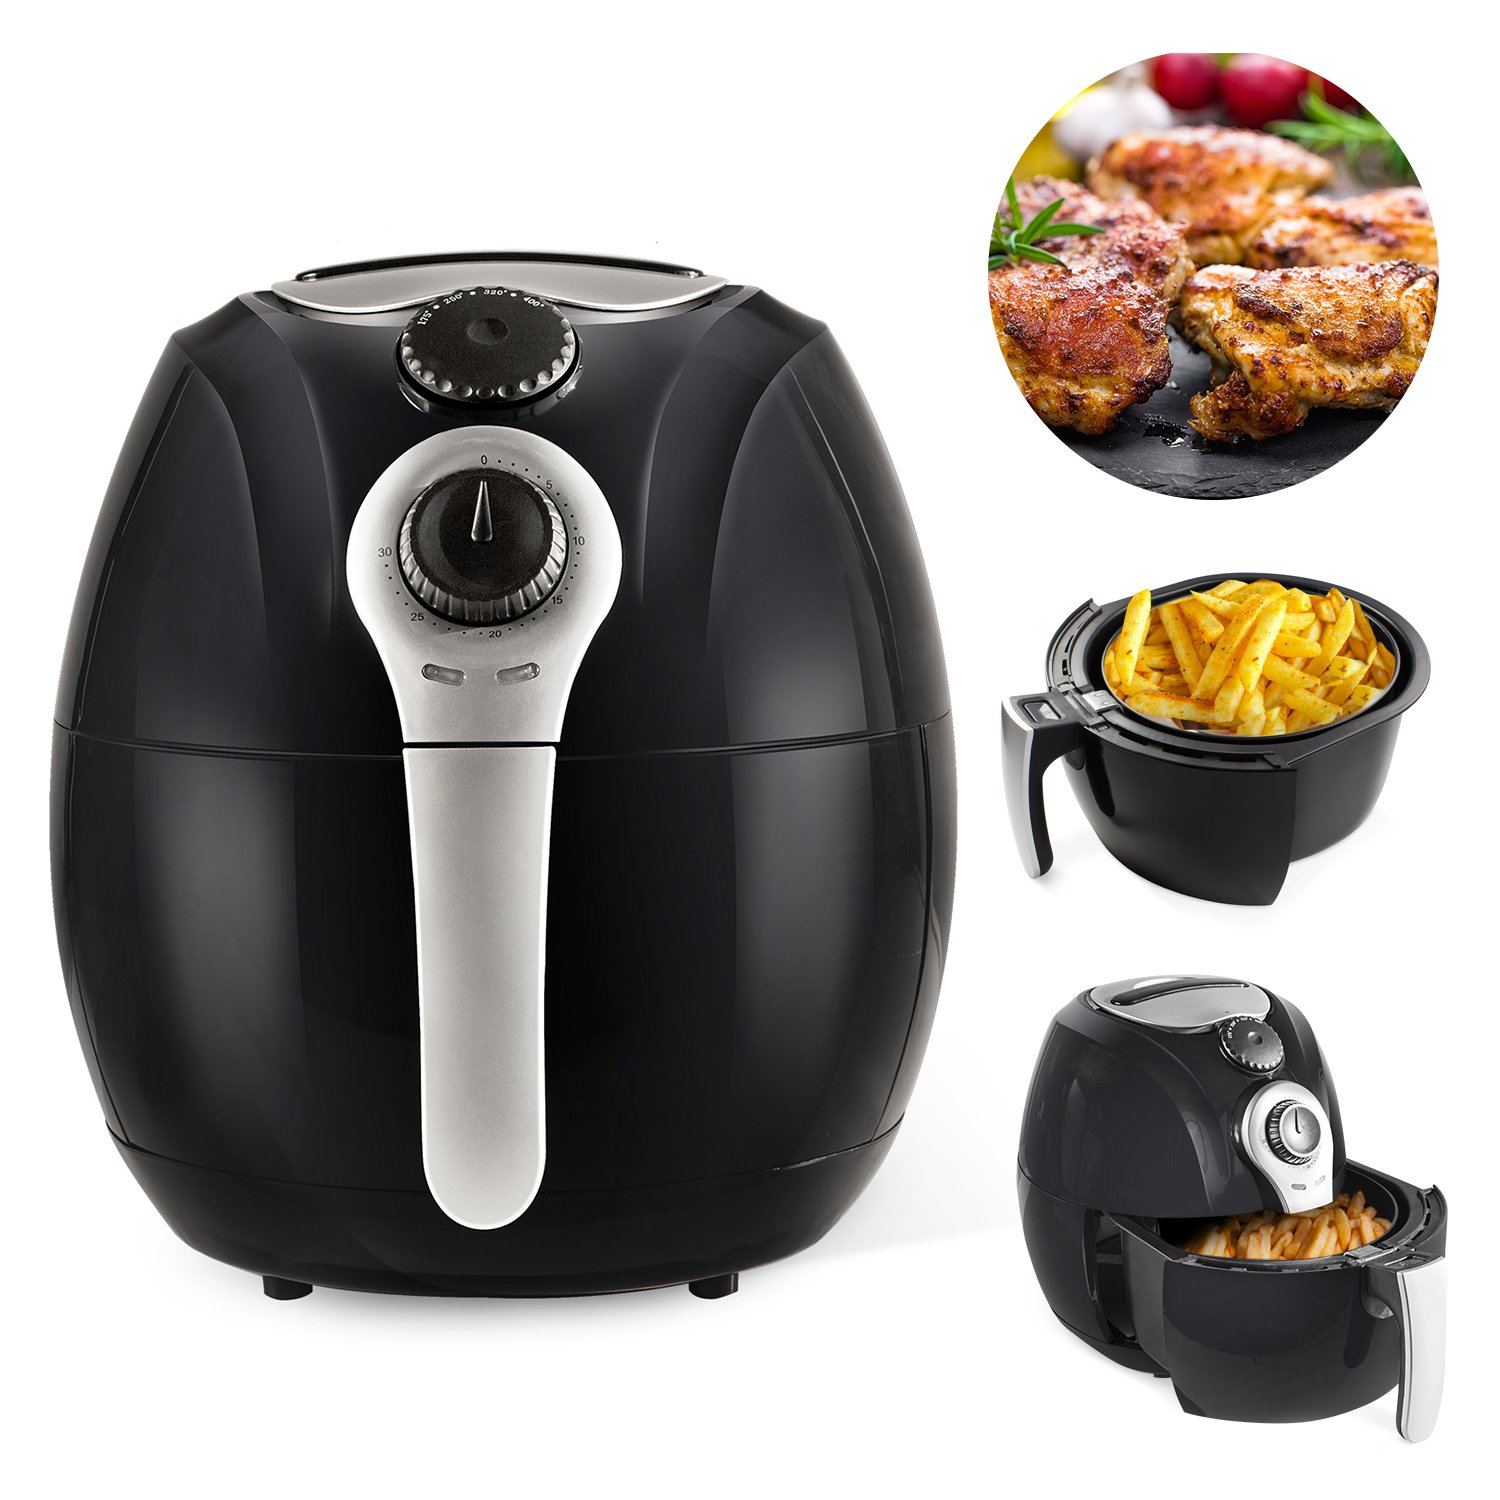 Simple Chef Air Fryer For Healthy Oil Free Rice Cooker Circuit C Cooking Timer 35 Liter Capacity W Dishwasher Safe Parts Kitchen Dining